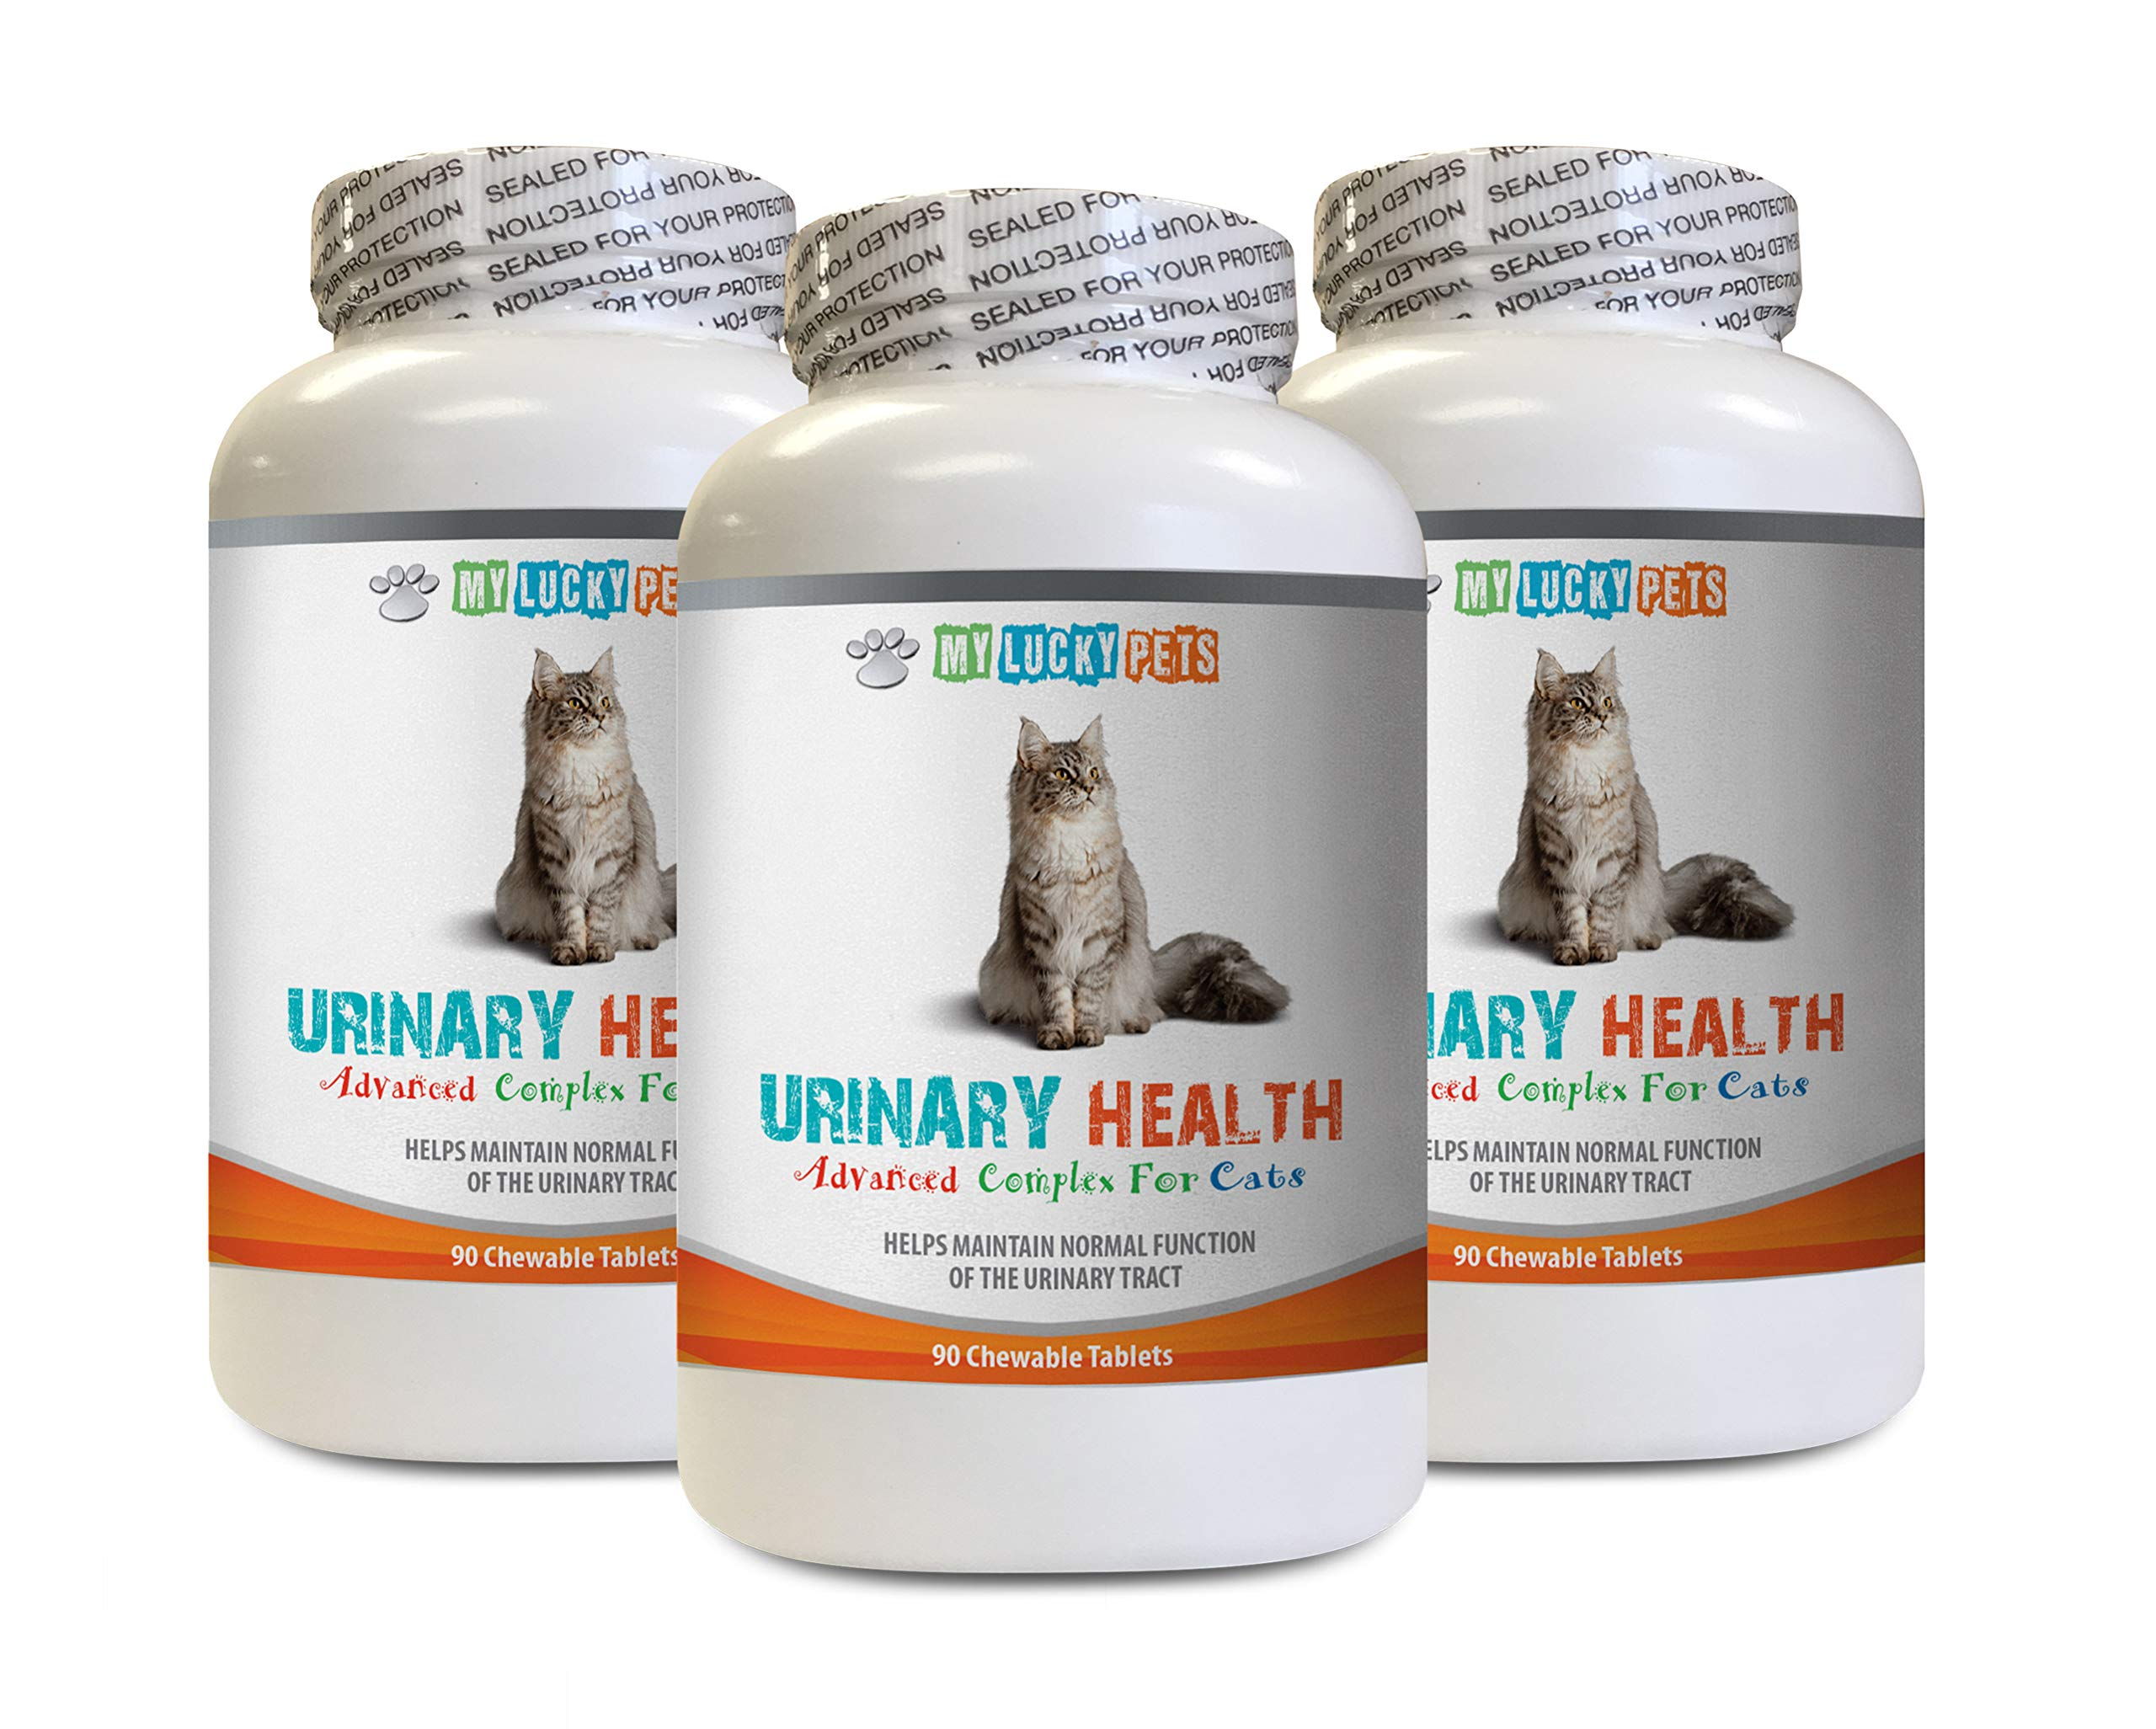 MY LUCKY PETS LLC cat UTI Support - CAT Urinary Health Formula - Support Bladder Health - Natural Complex - Cranberry Bites for Cats - 3 Bottle (270 Treats) by MY LUCKY PETS LLC